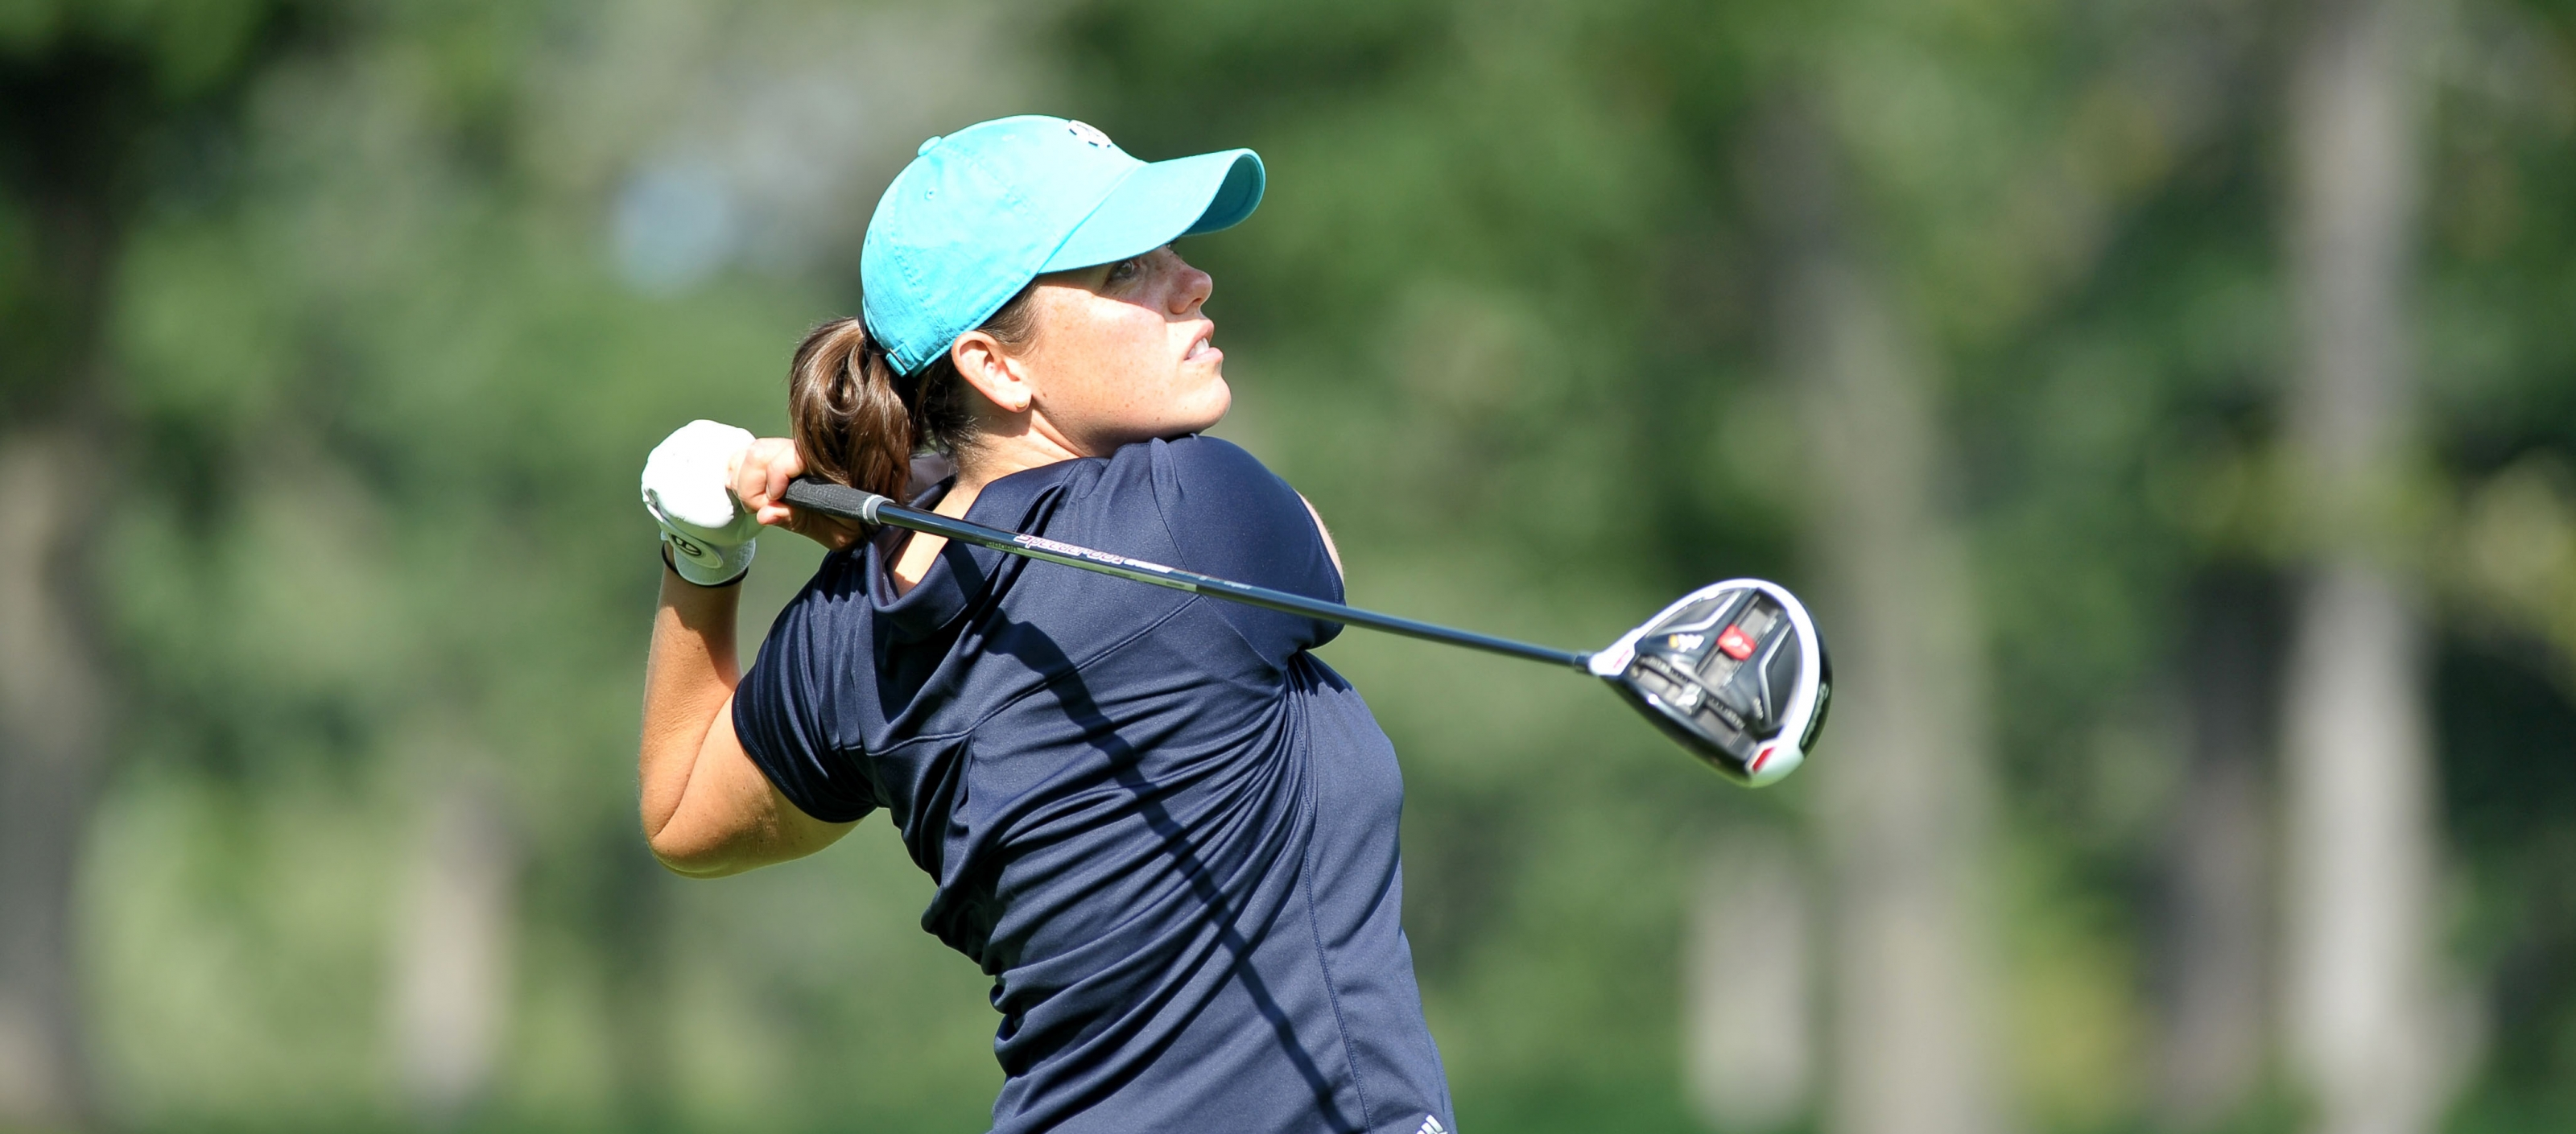 katie pius assistant pga professional at biltmore cc has 16 top 20 finishes in - Golf Assistant Jobs